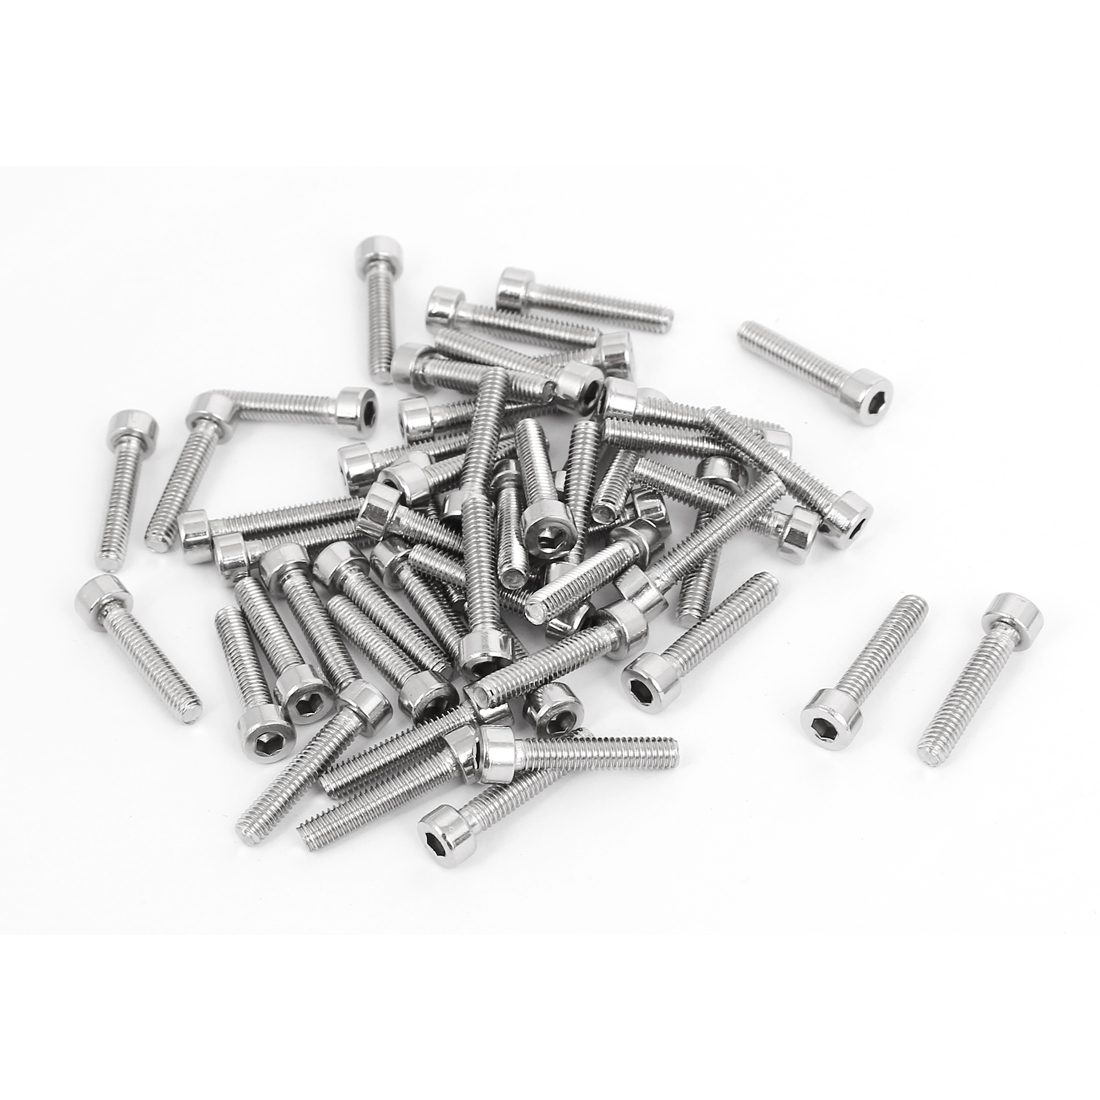 50pcs 3mm Stainless Steel Hex Key Socket Head Cap Screws Bolts M4x0.7mmx20mm